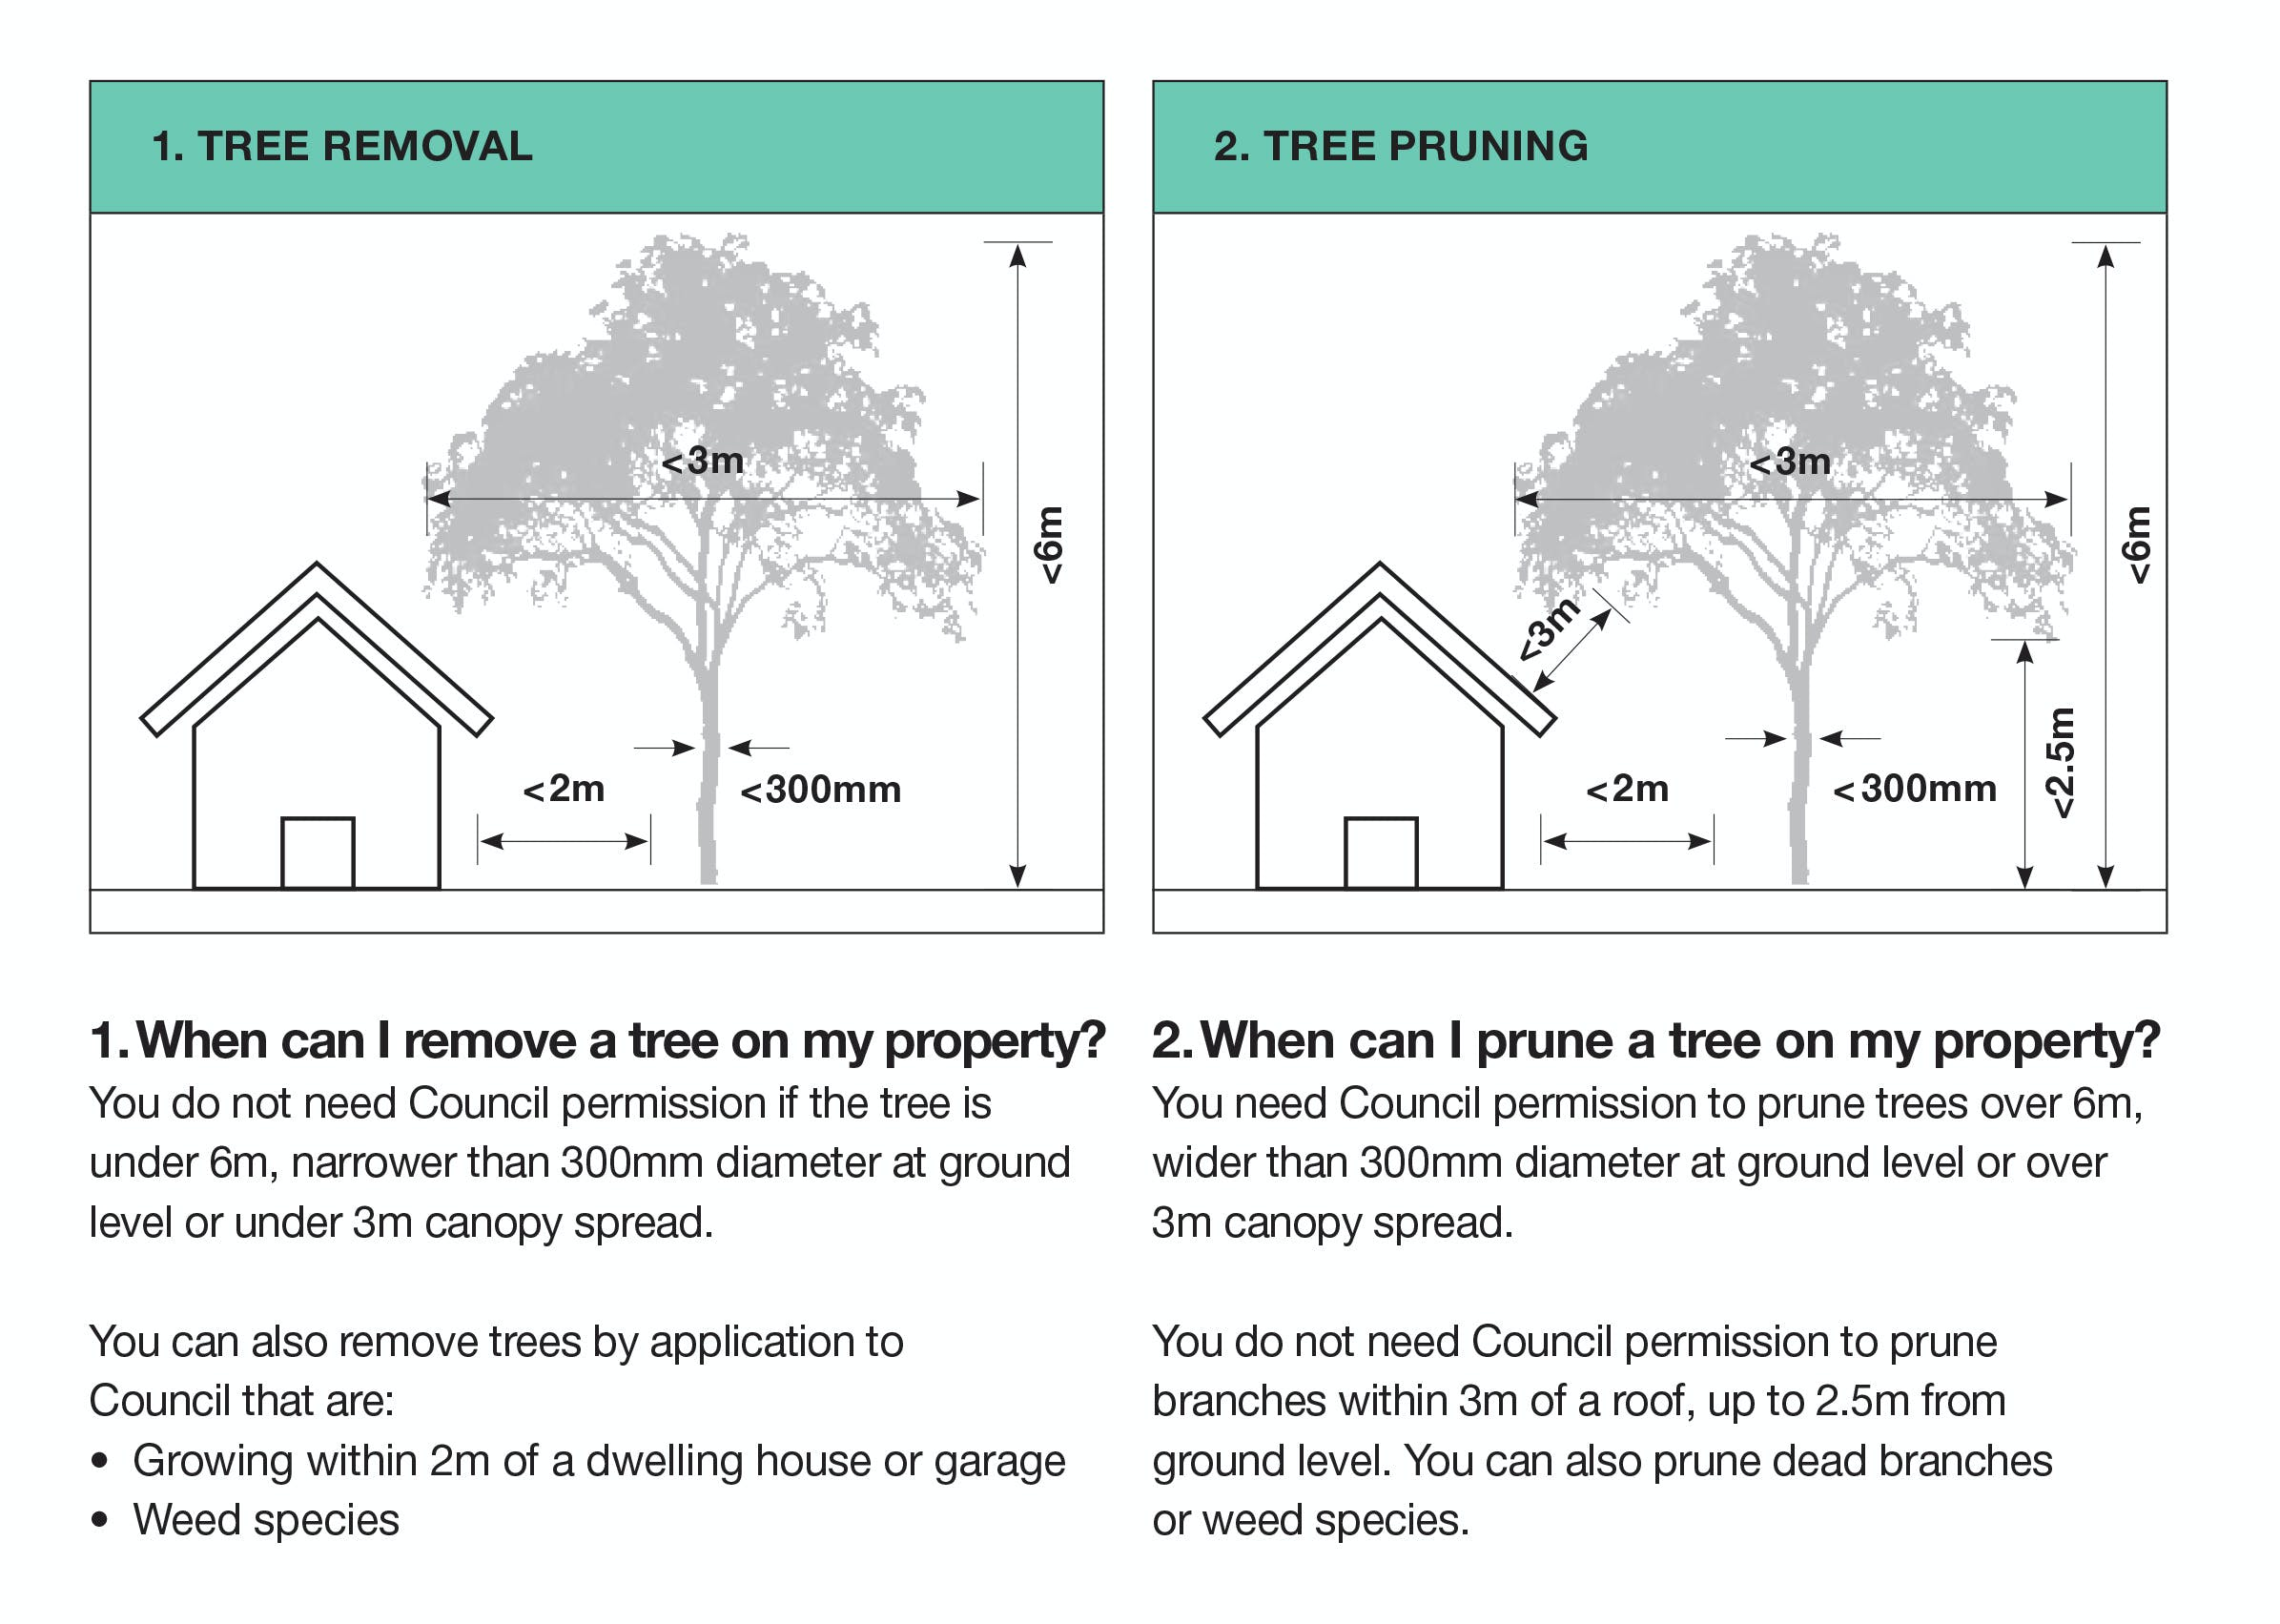 When can I remove or prune a tree on my property?